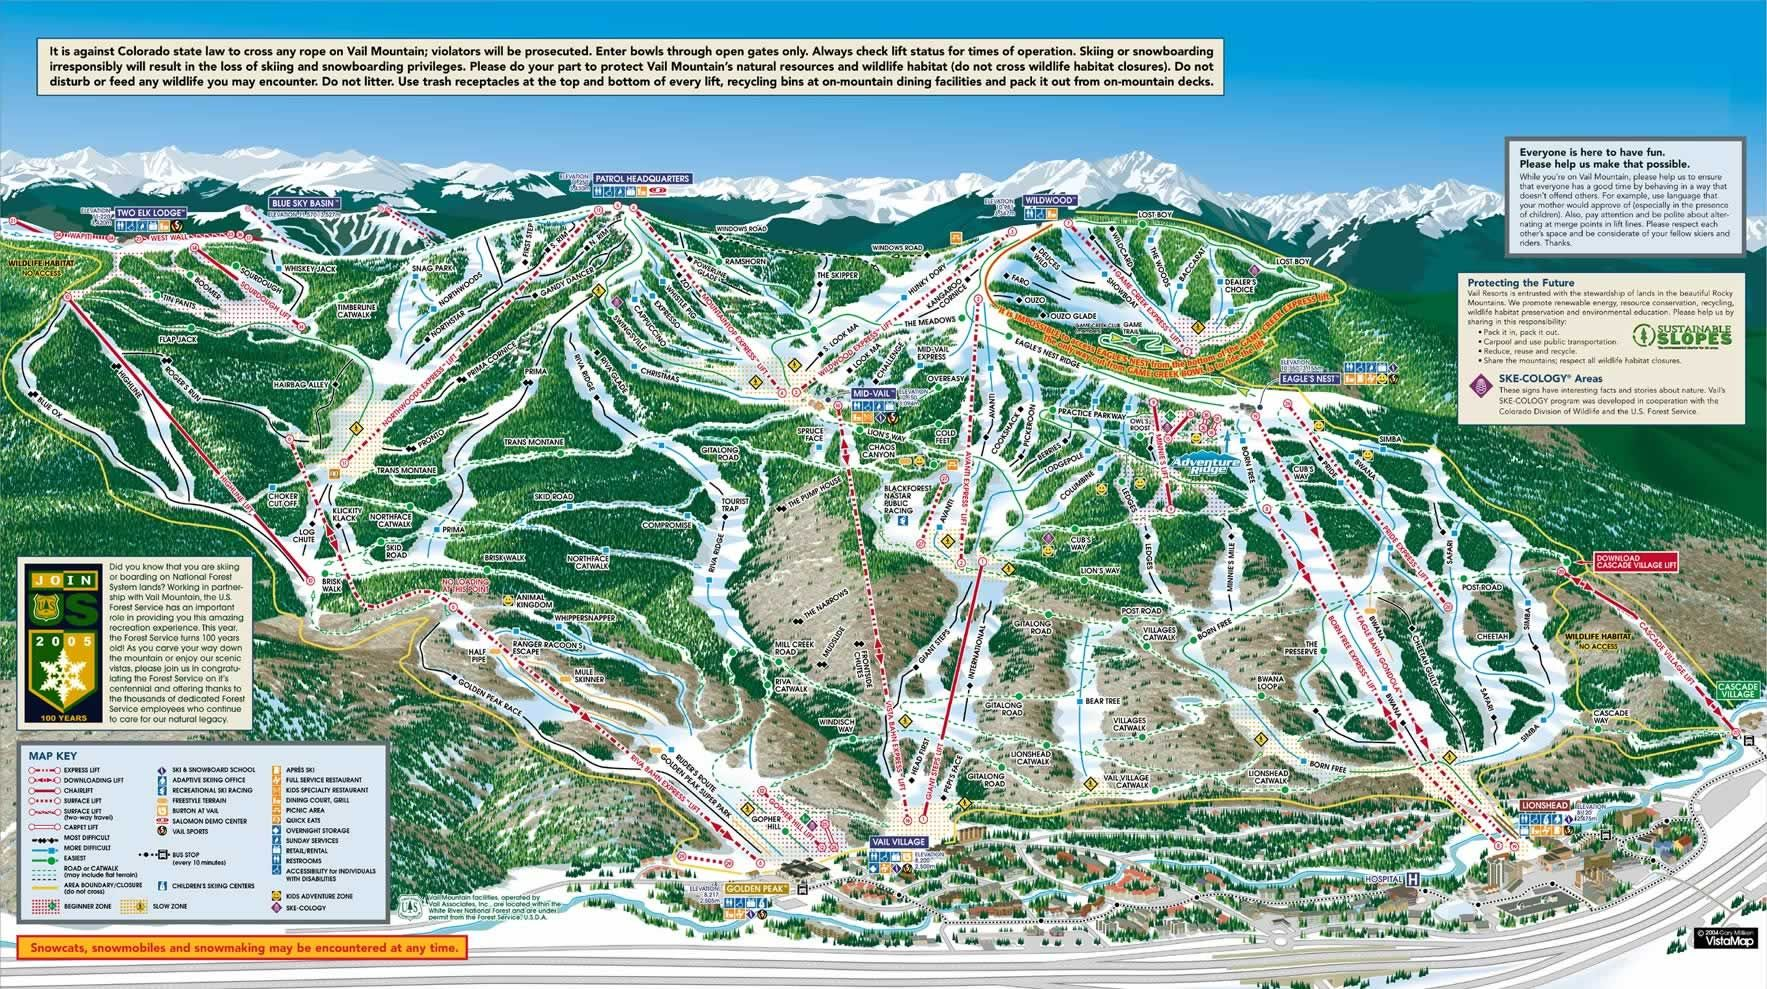 vail ski resort map   all our adventures   skiing, trail maps, vail